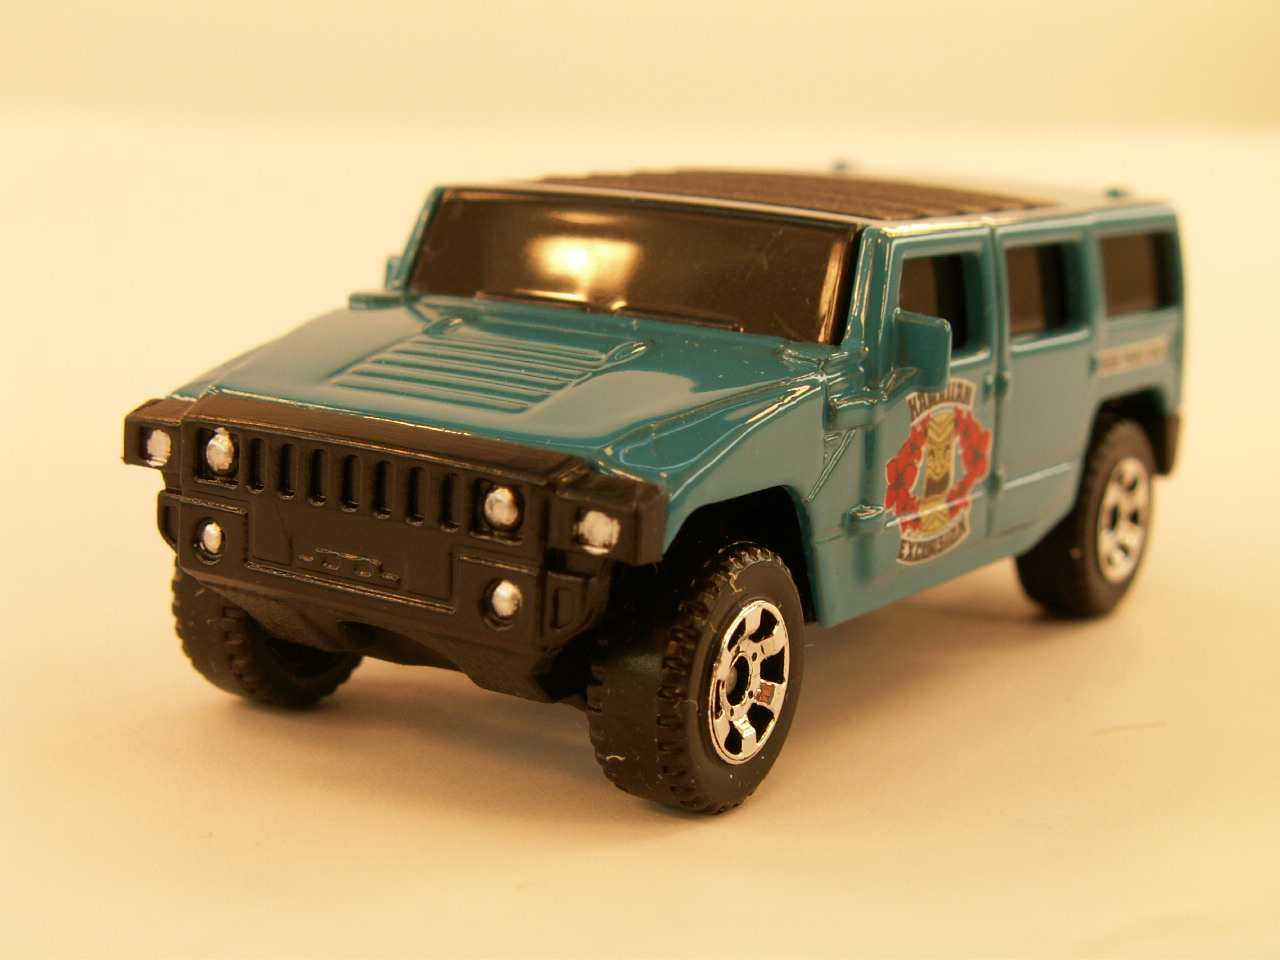 2002 Hummer H2 SUV Concept photo - 1